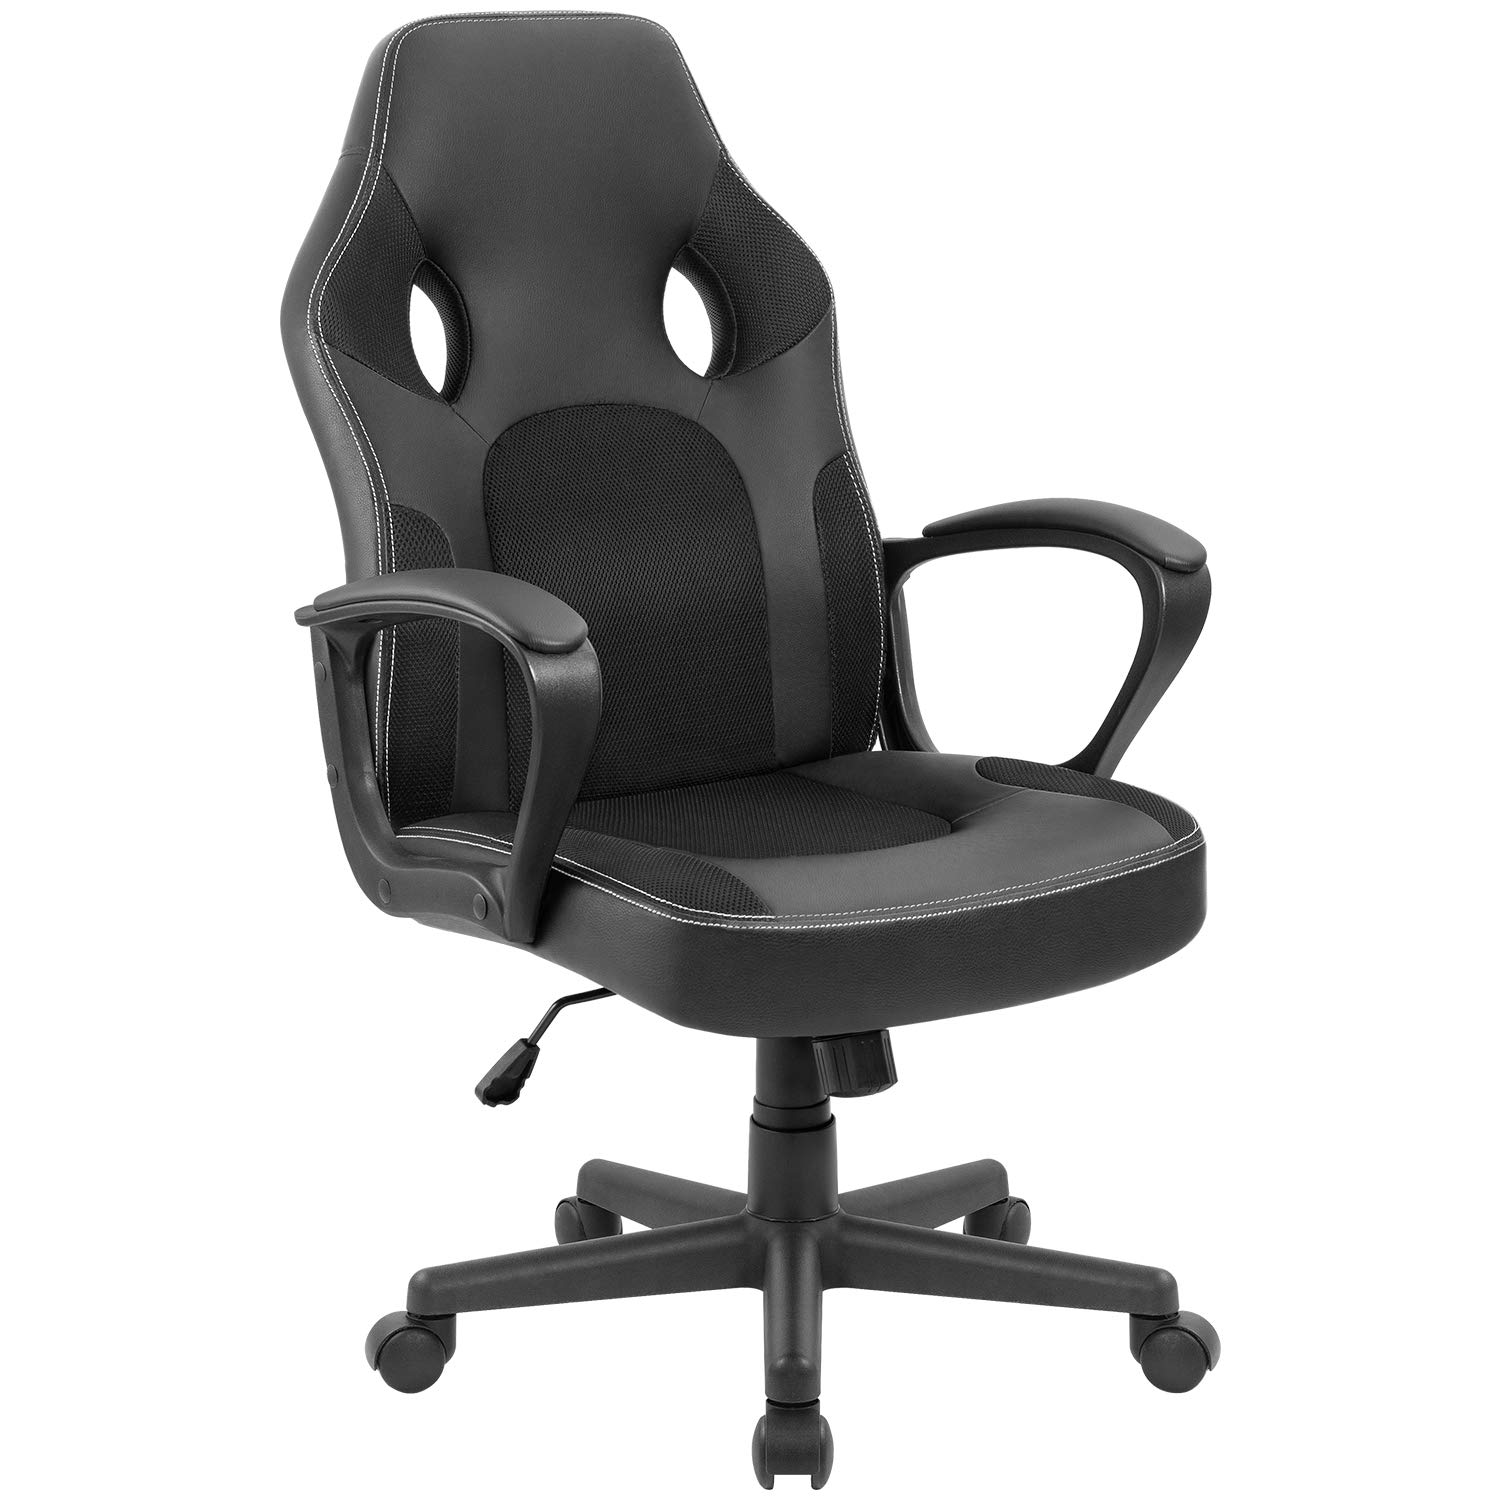 Furmax Office Chair Black Friday Deal 2020